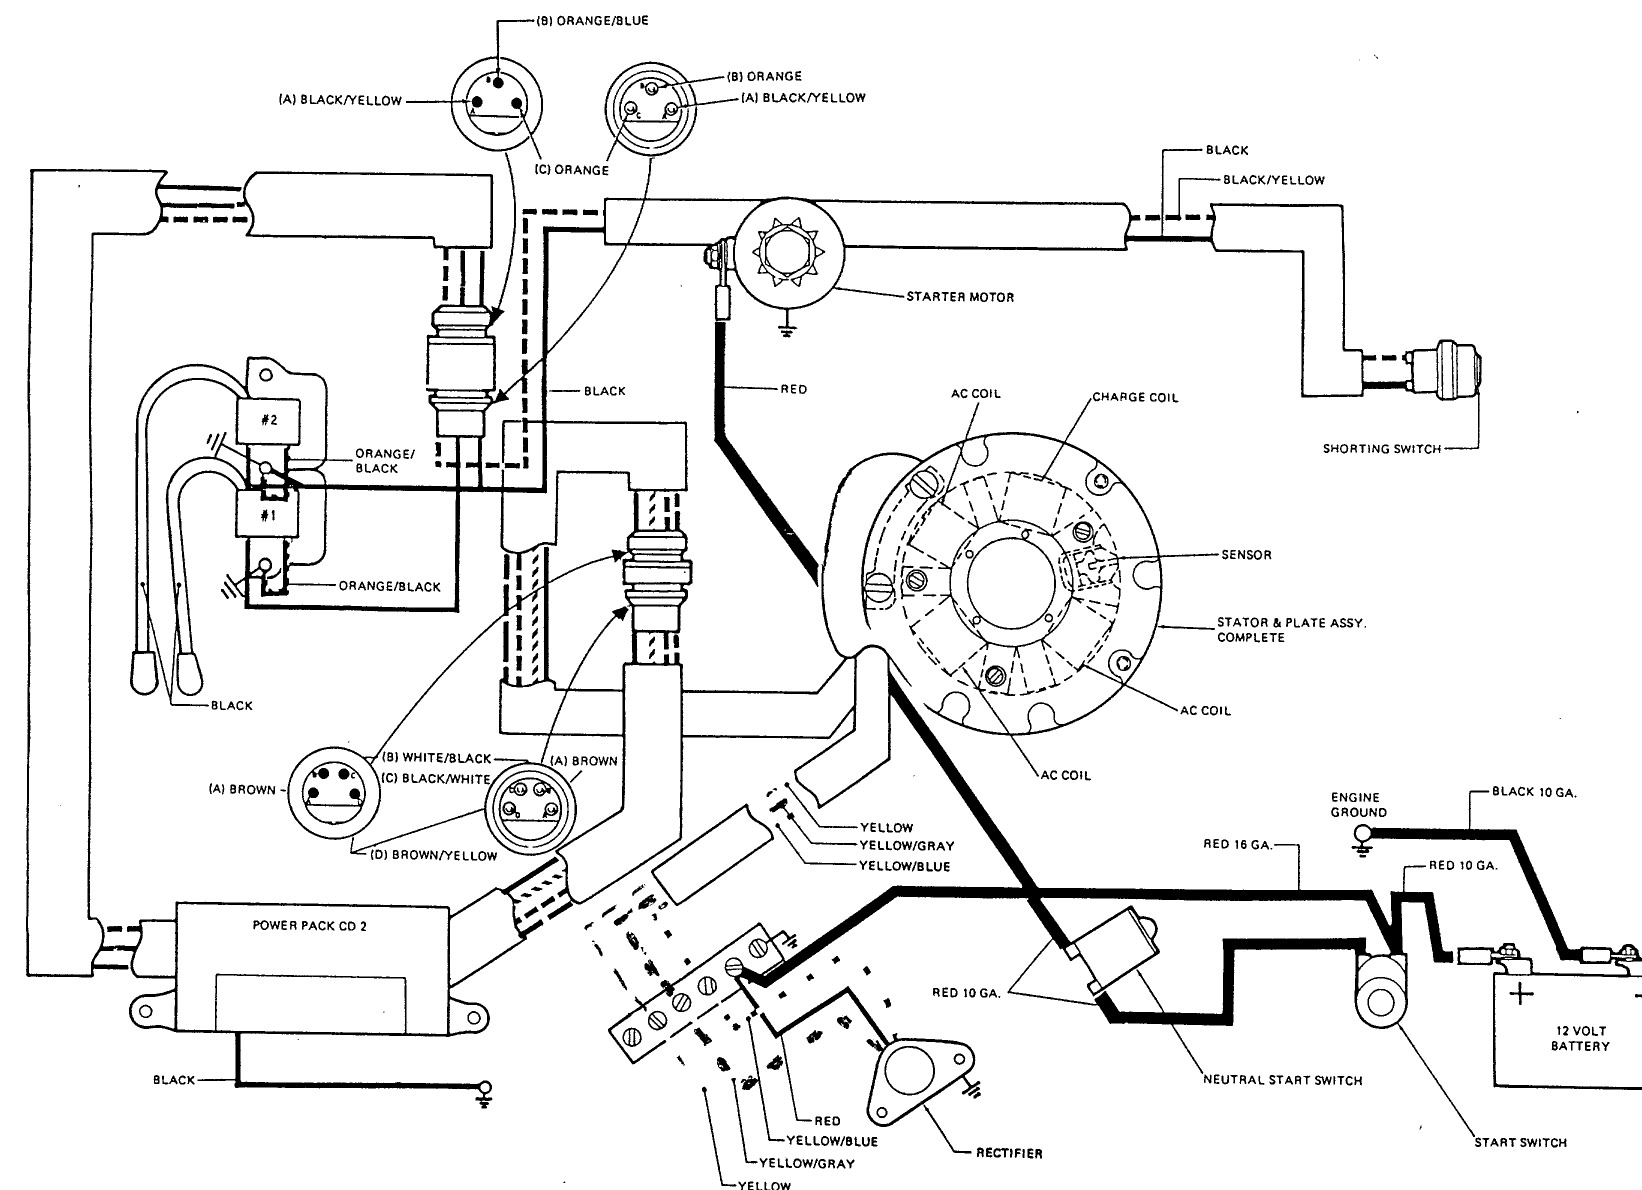 Attwood Trolling Motor Plug Wiring Diagram Maintaining Johnson 99 Troubleshooting Electrical For Electric Starter